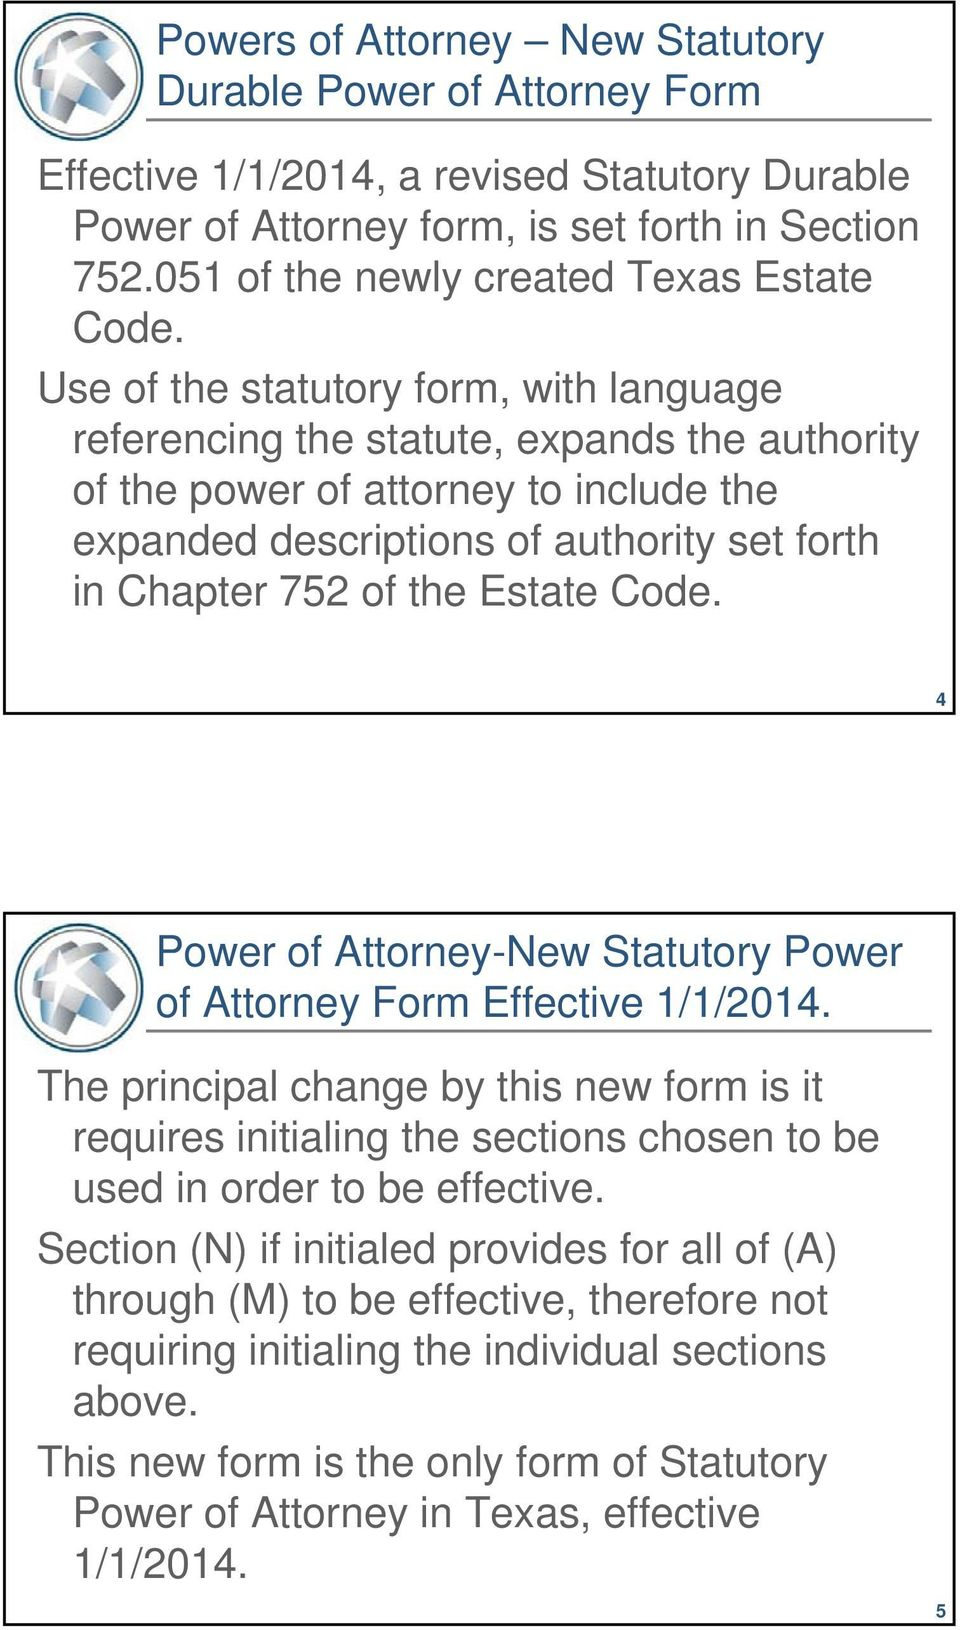 Use of the statutory form, with language referencing the statute, expands the authority of the power of attorney to include the expanded descriptions of authority set forth in Chapter 752 of the